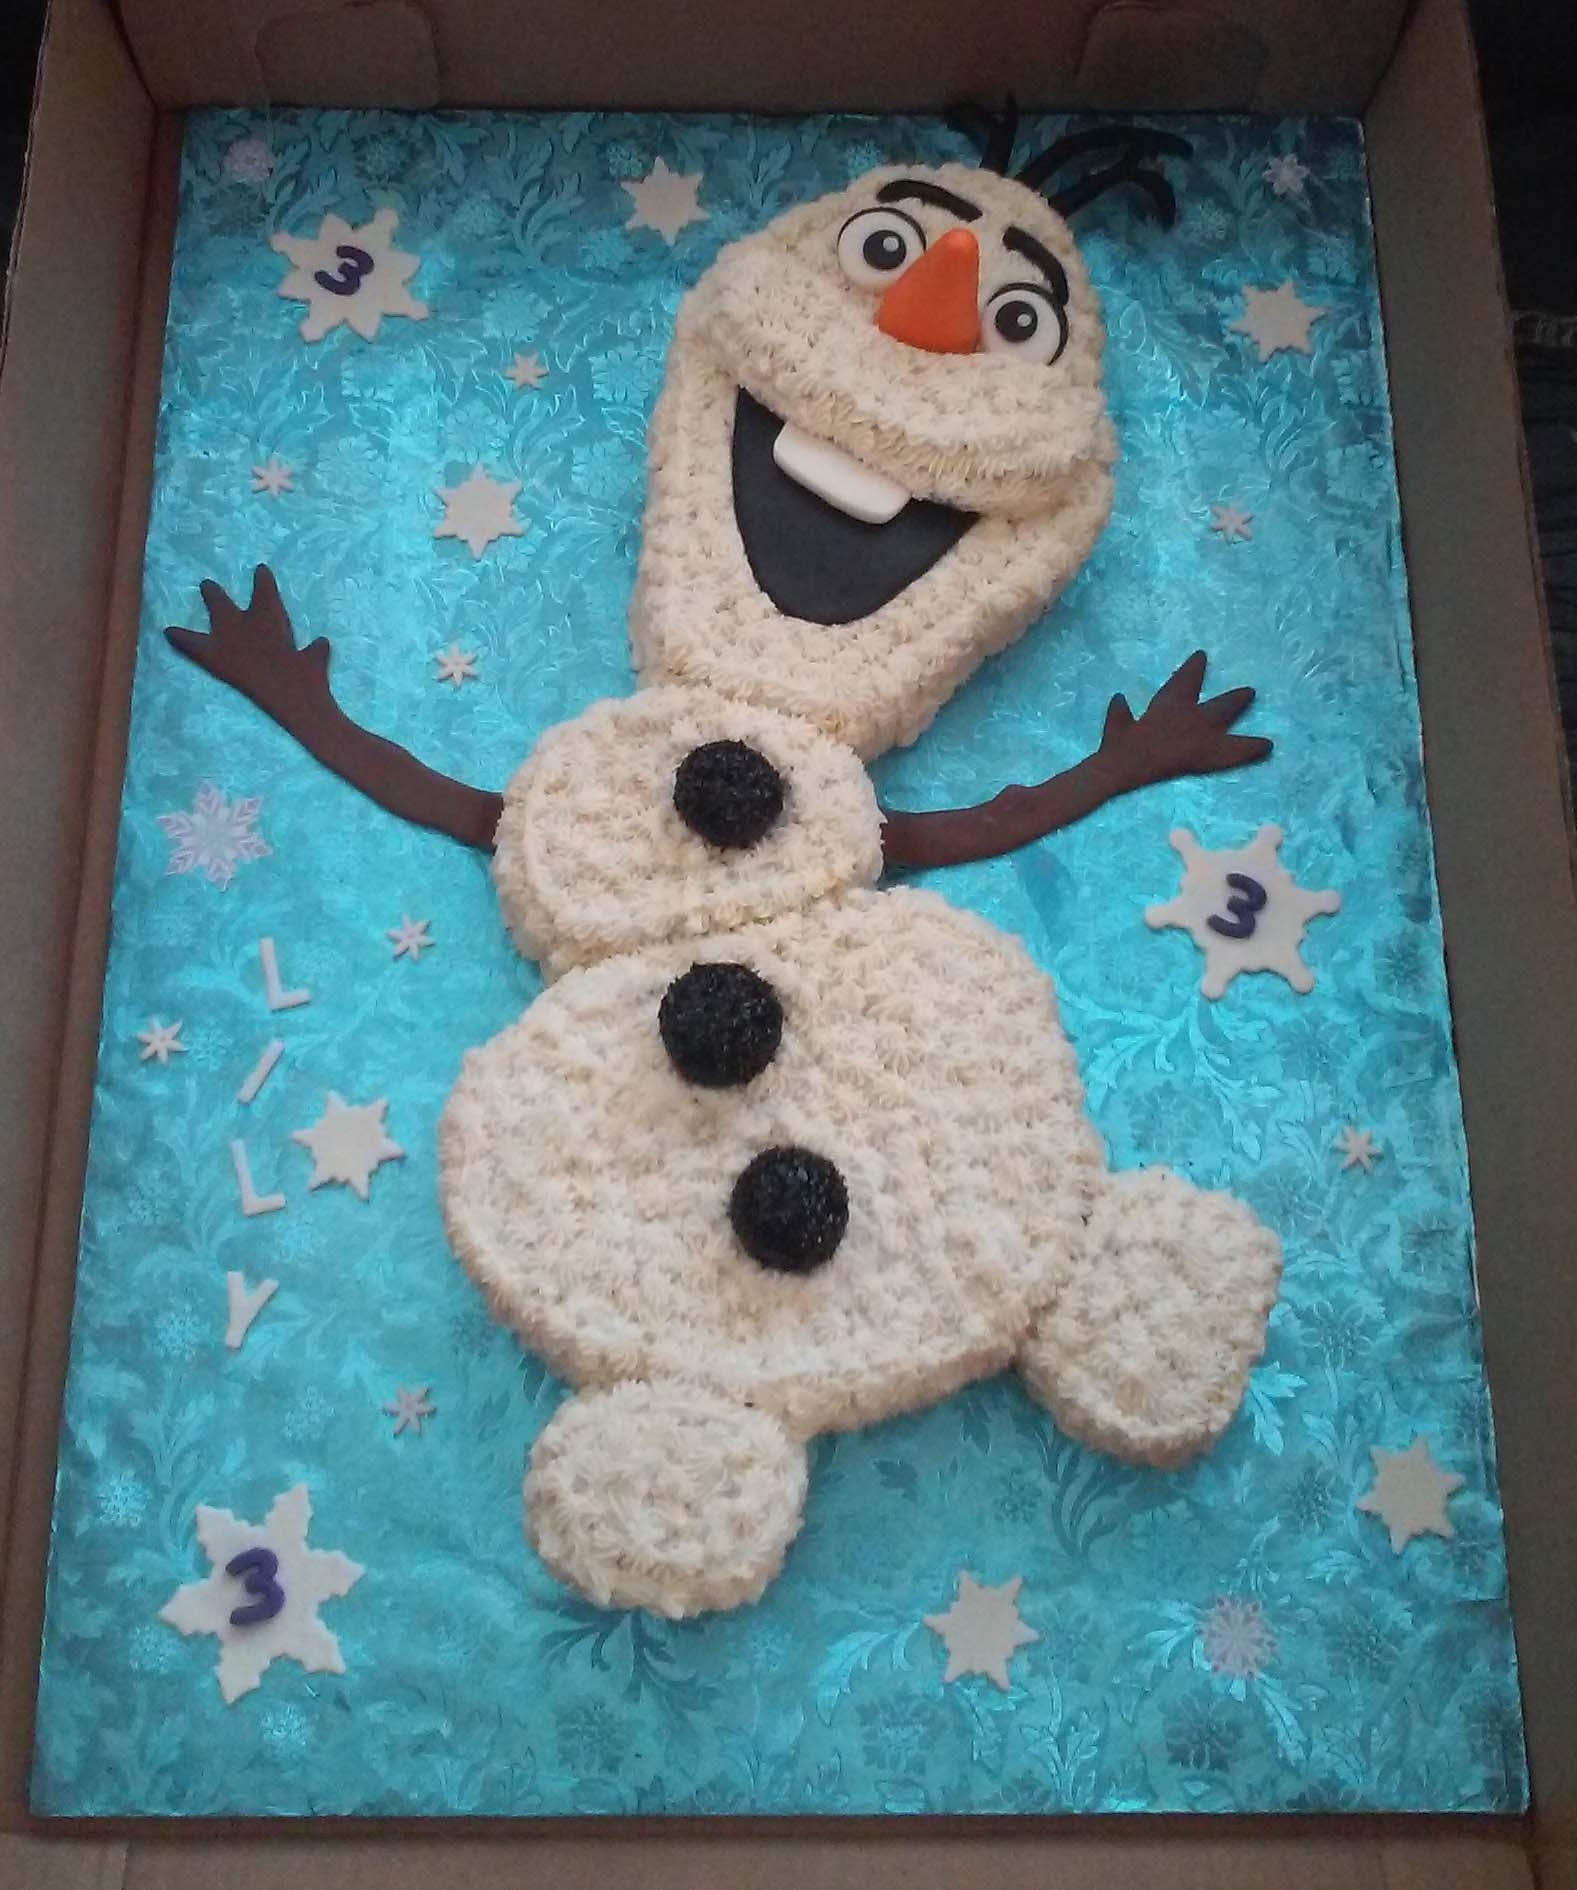 Frozen Olaf Themed Birthday Cake - CakeCentral.com